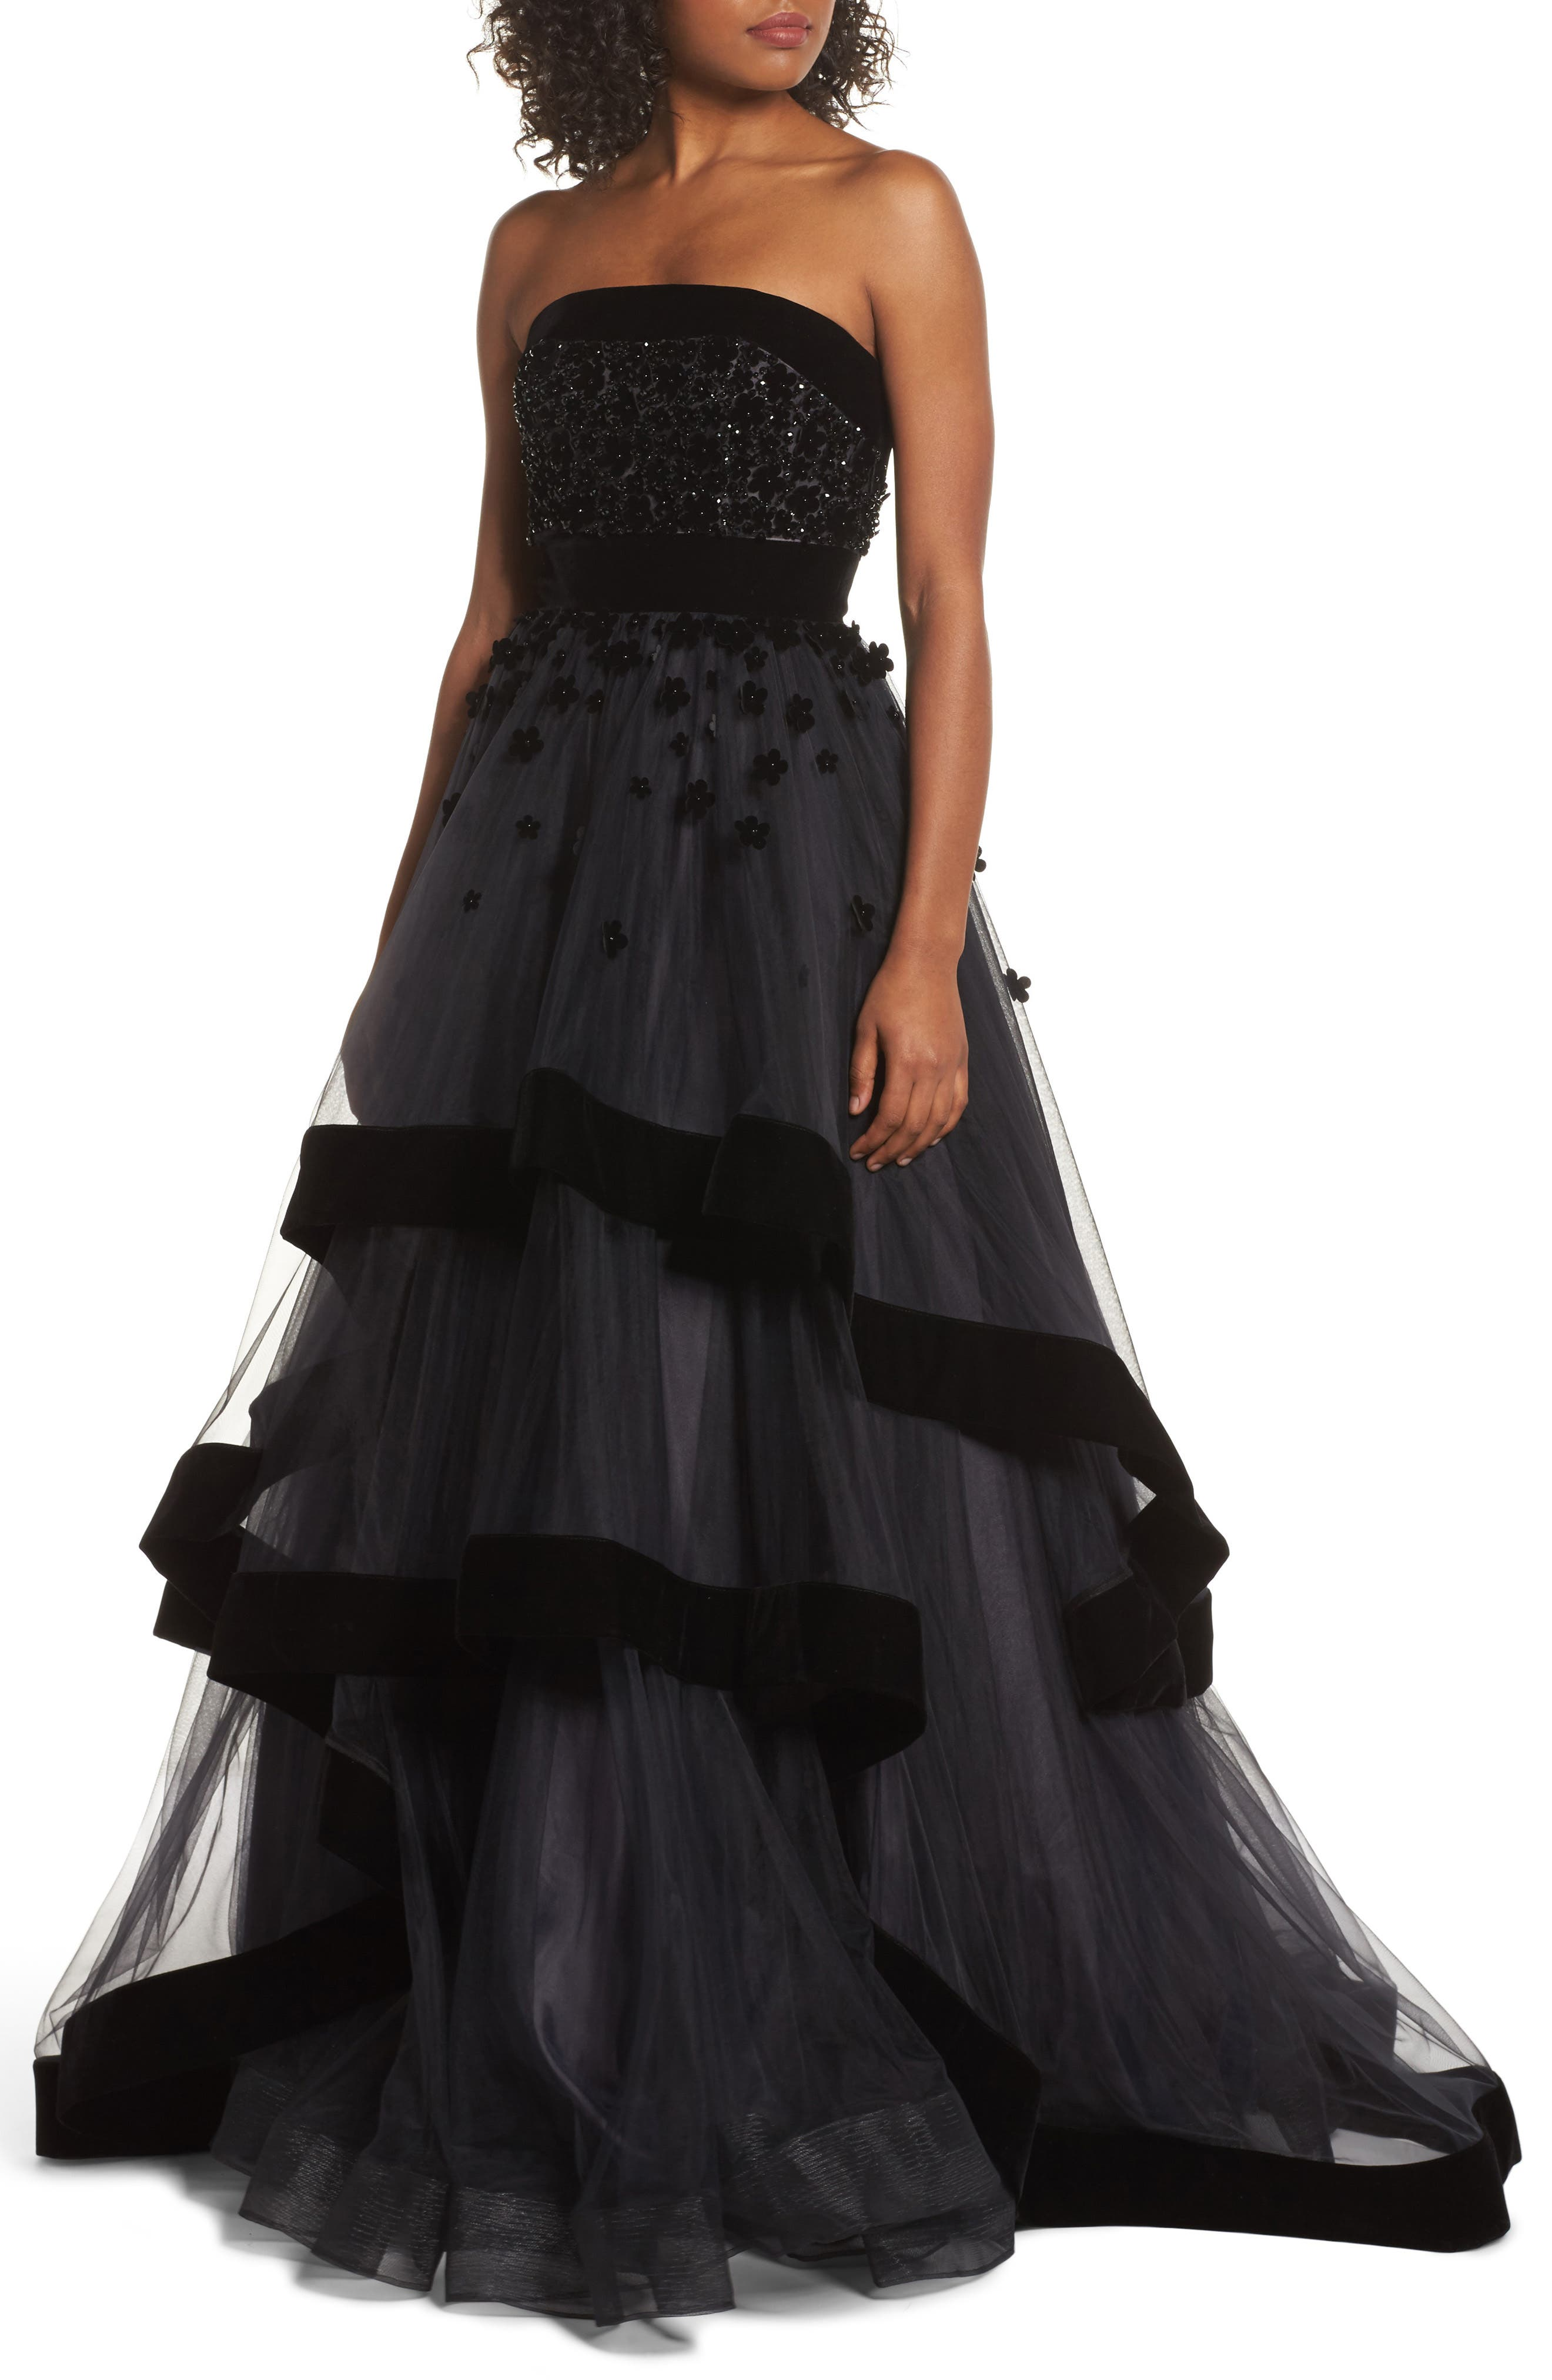 MAC DUGGAL Strapless Tiered Gown With Velvet Trim & Floral Appliques in Black